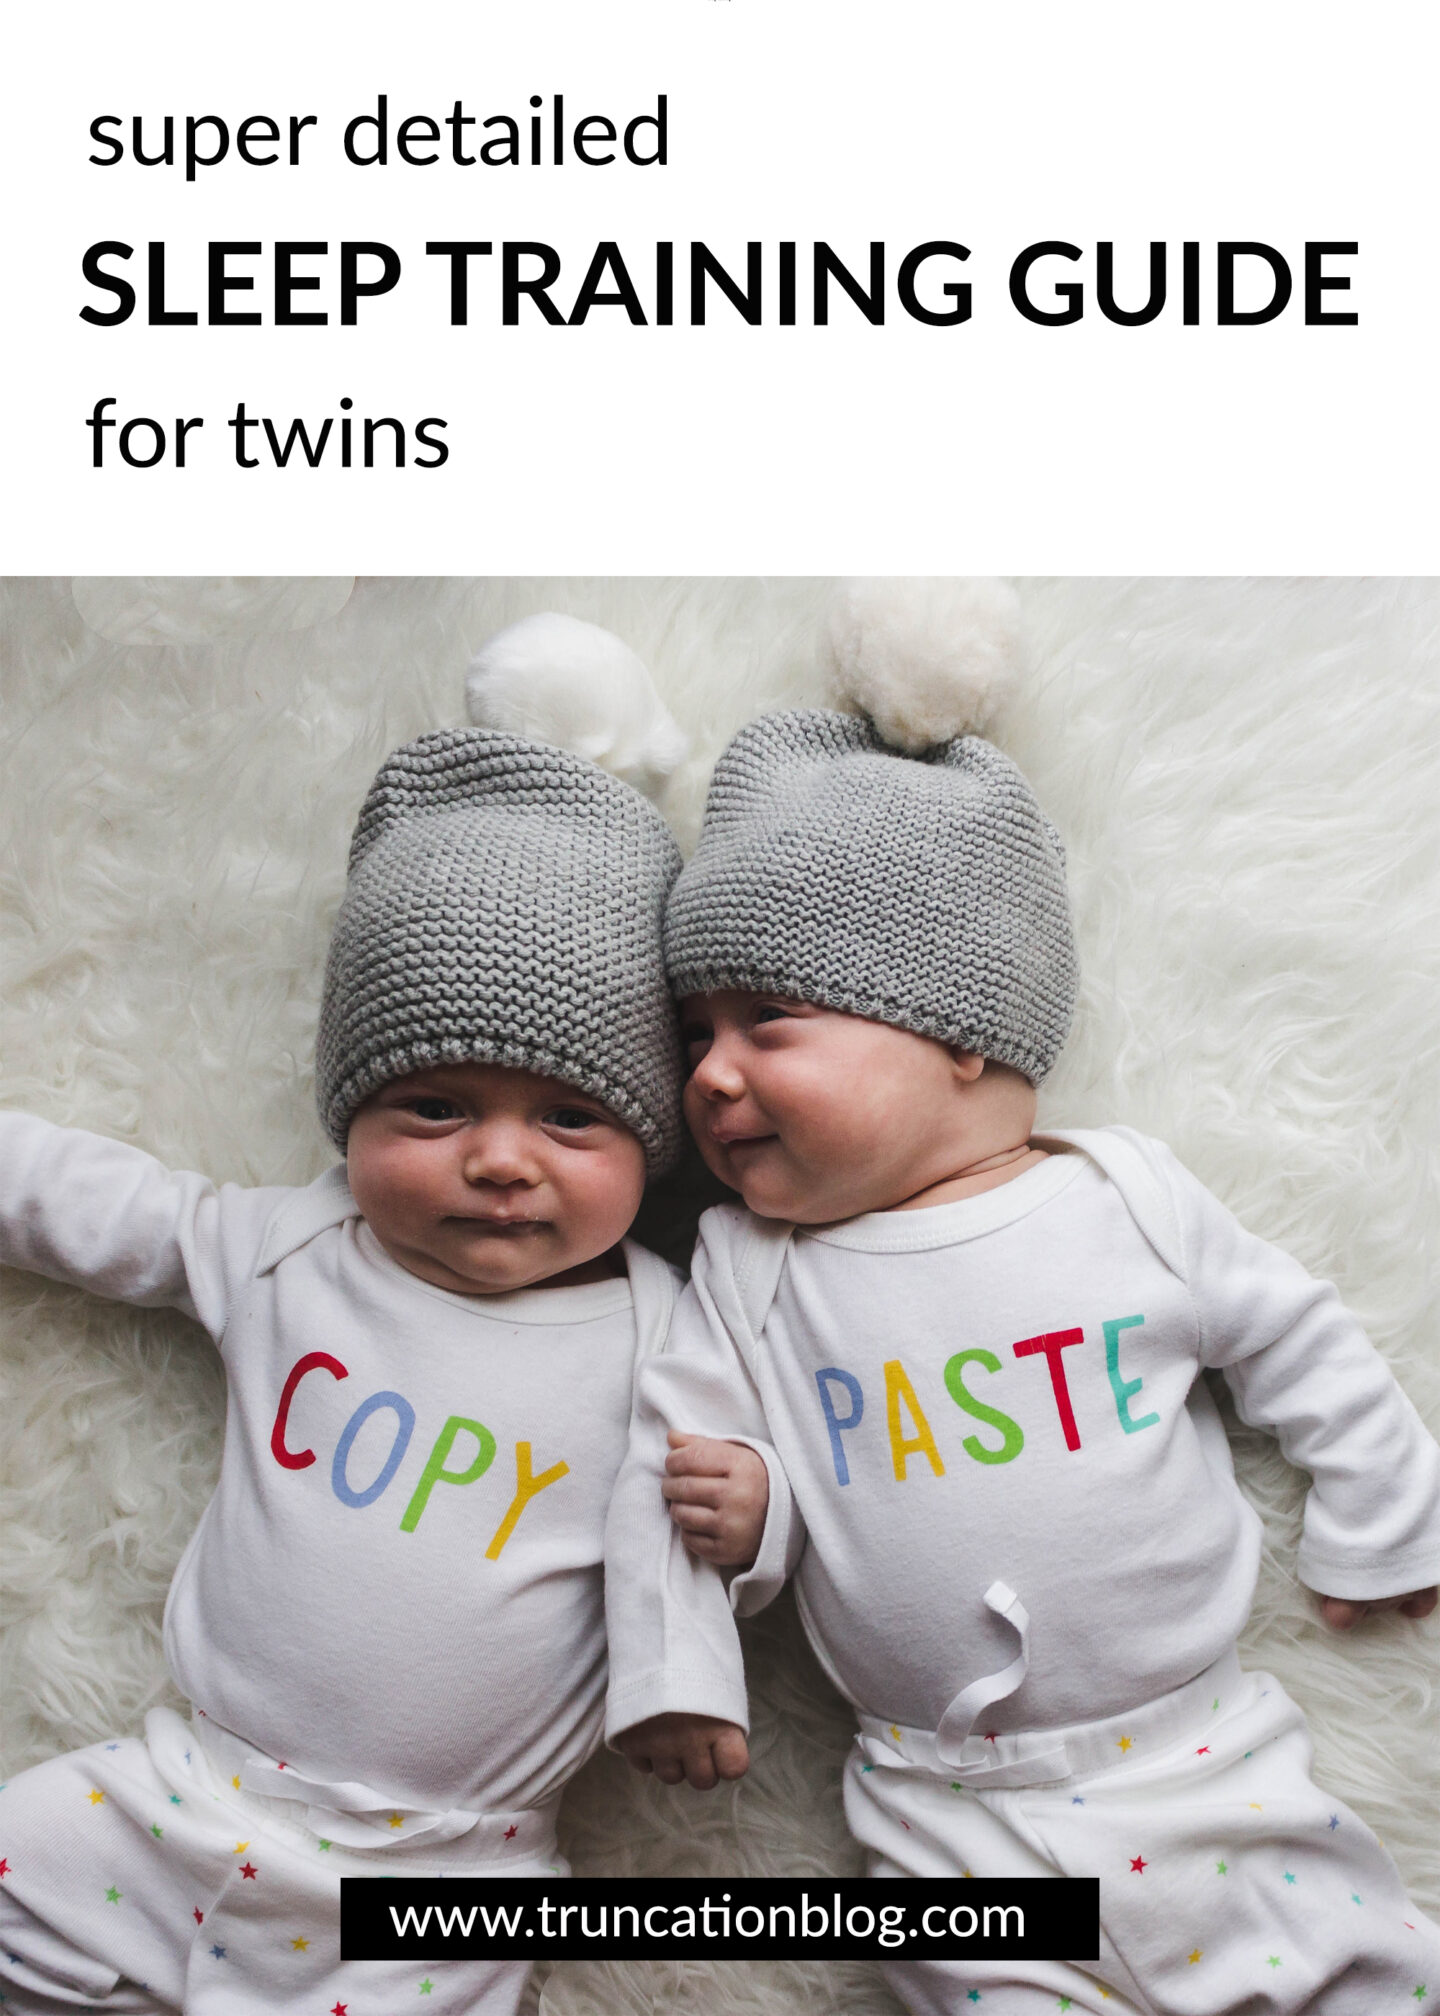 Super Detailed Sleep Training Guide for Twins